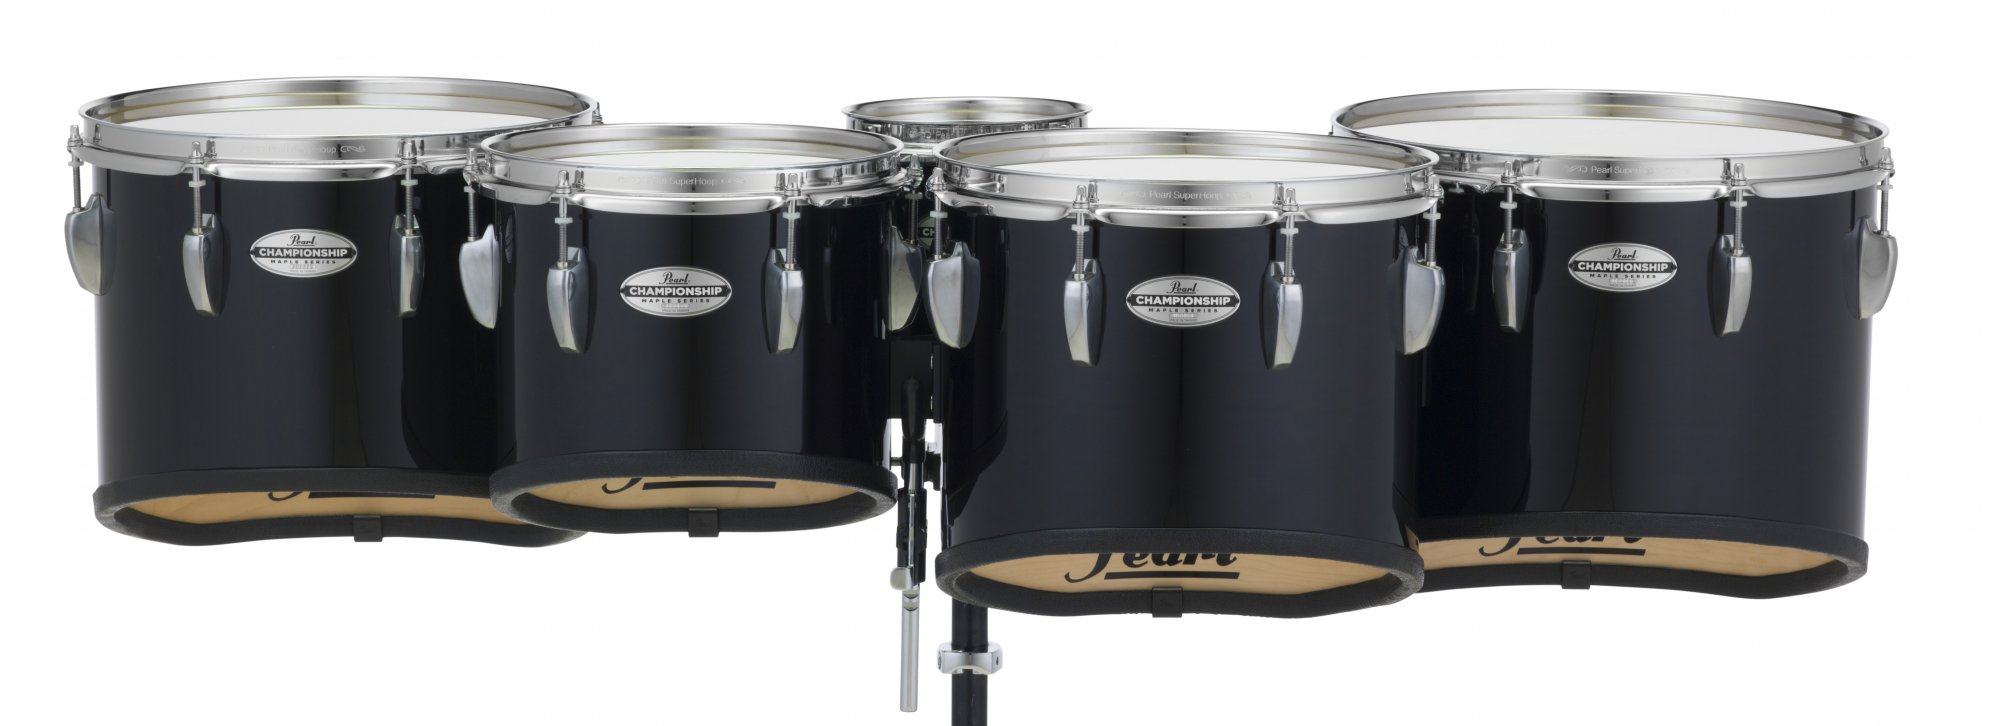 Championship Maple Tenor Drums: 6, 10, 12, 13, 14, Sonic-cut